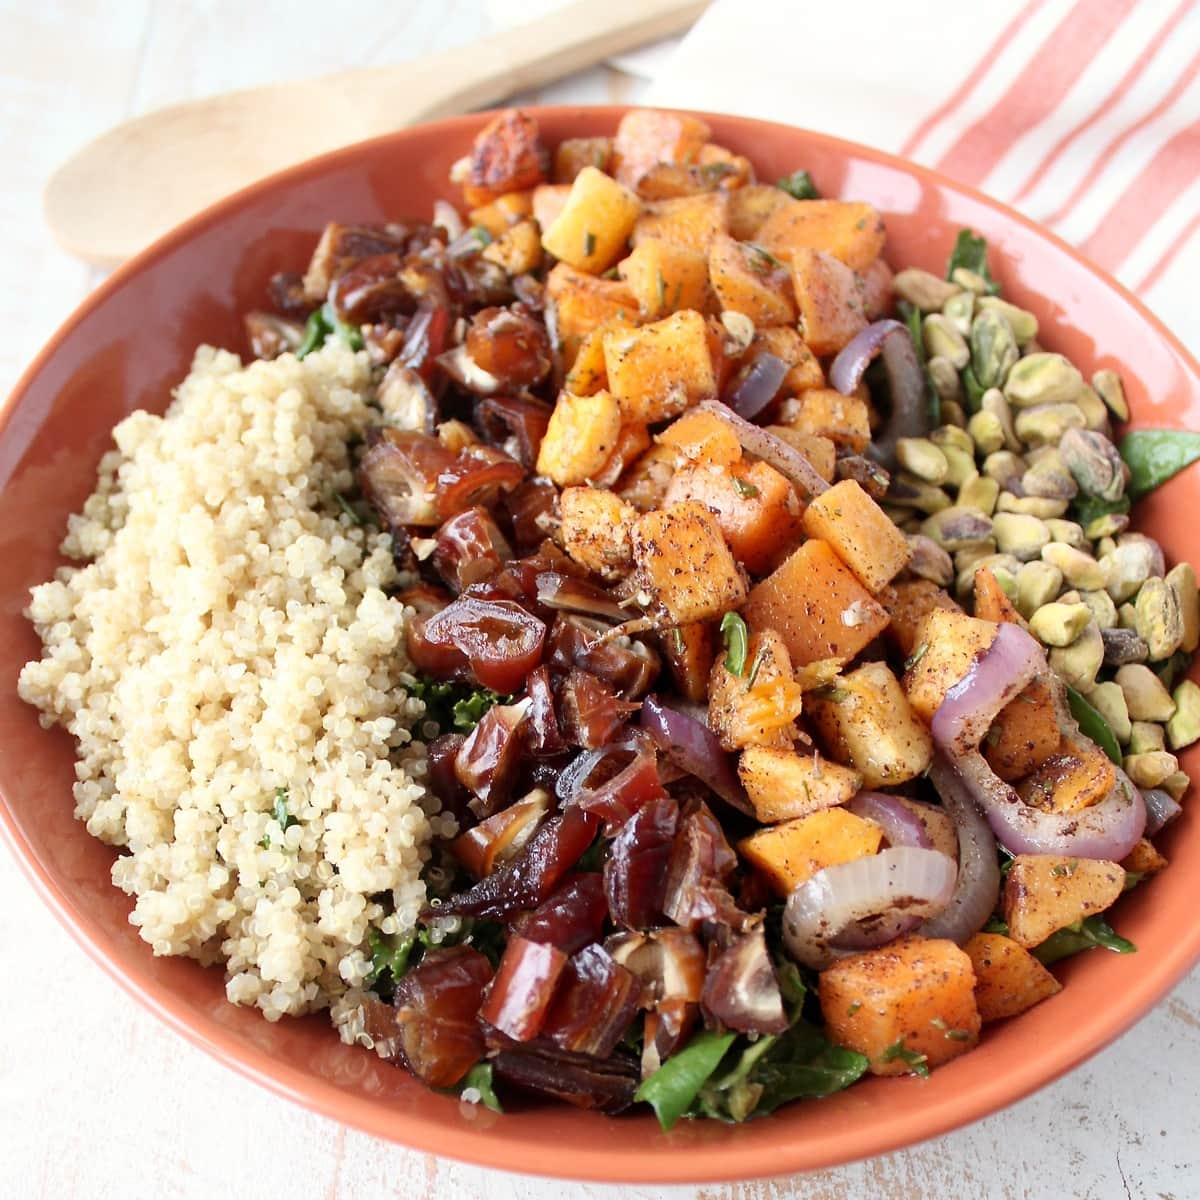 Butternut squash kale salad with pistachios and medjool dates.